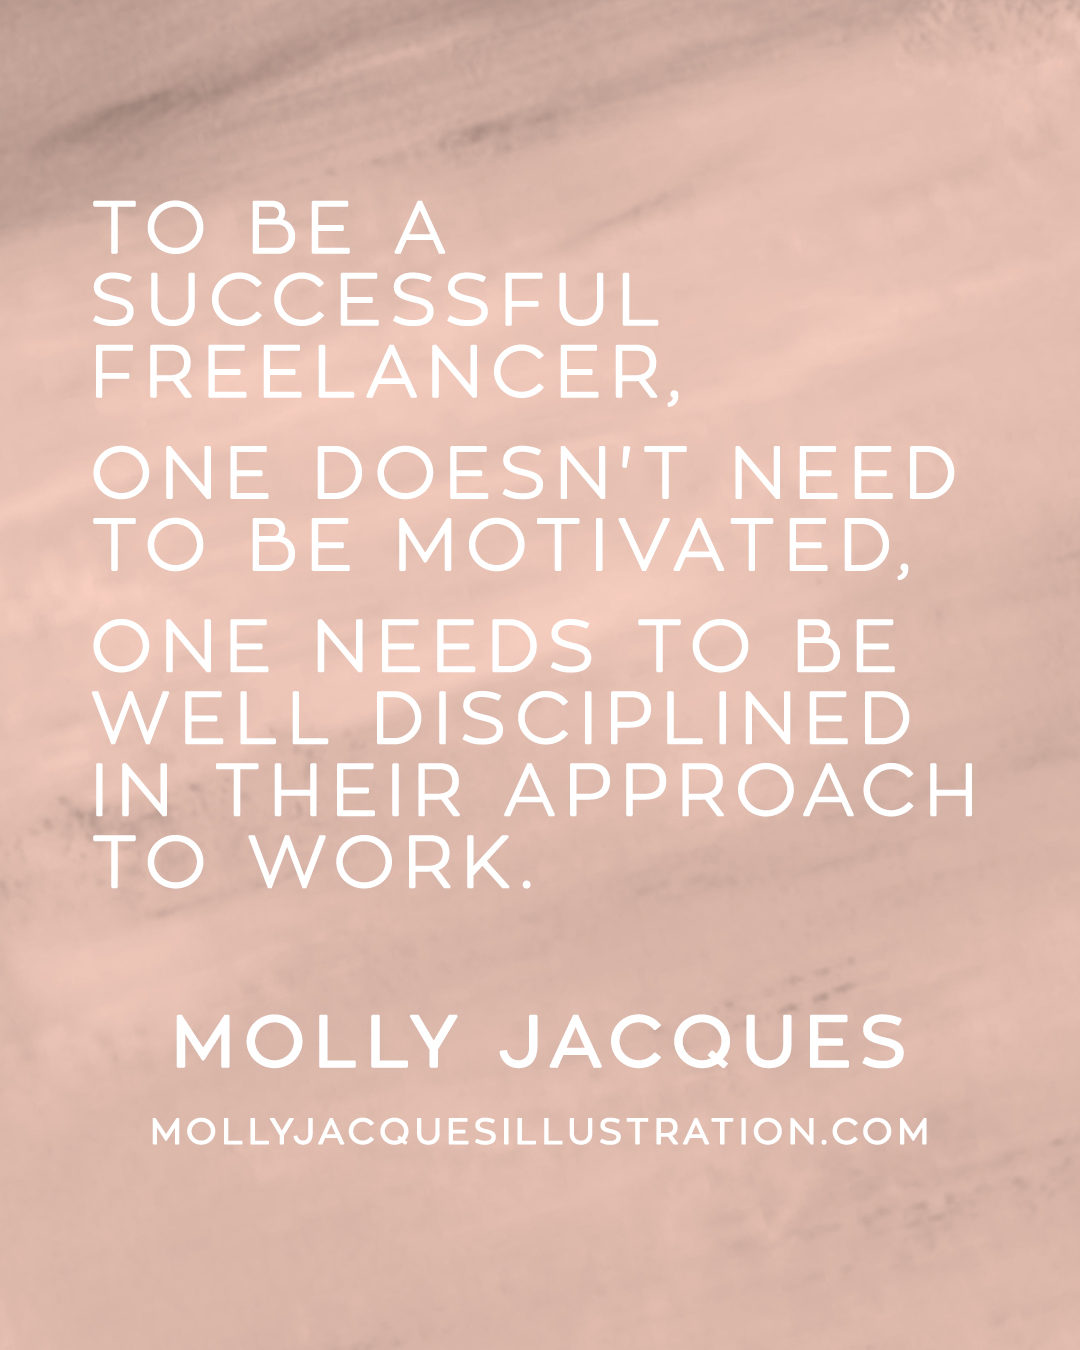 """To be a successful freelancer, one doesn't need to be motivated, one needs to be well disciplined in their approach to work."" Quote from Molly Jacques"